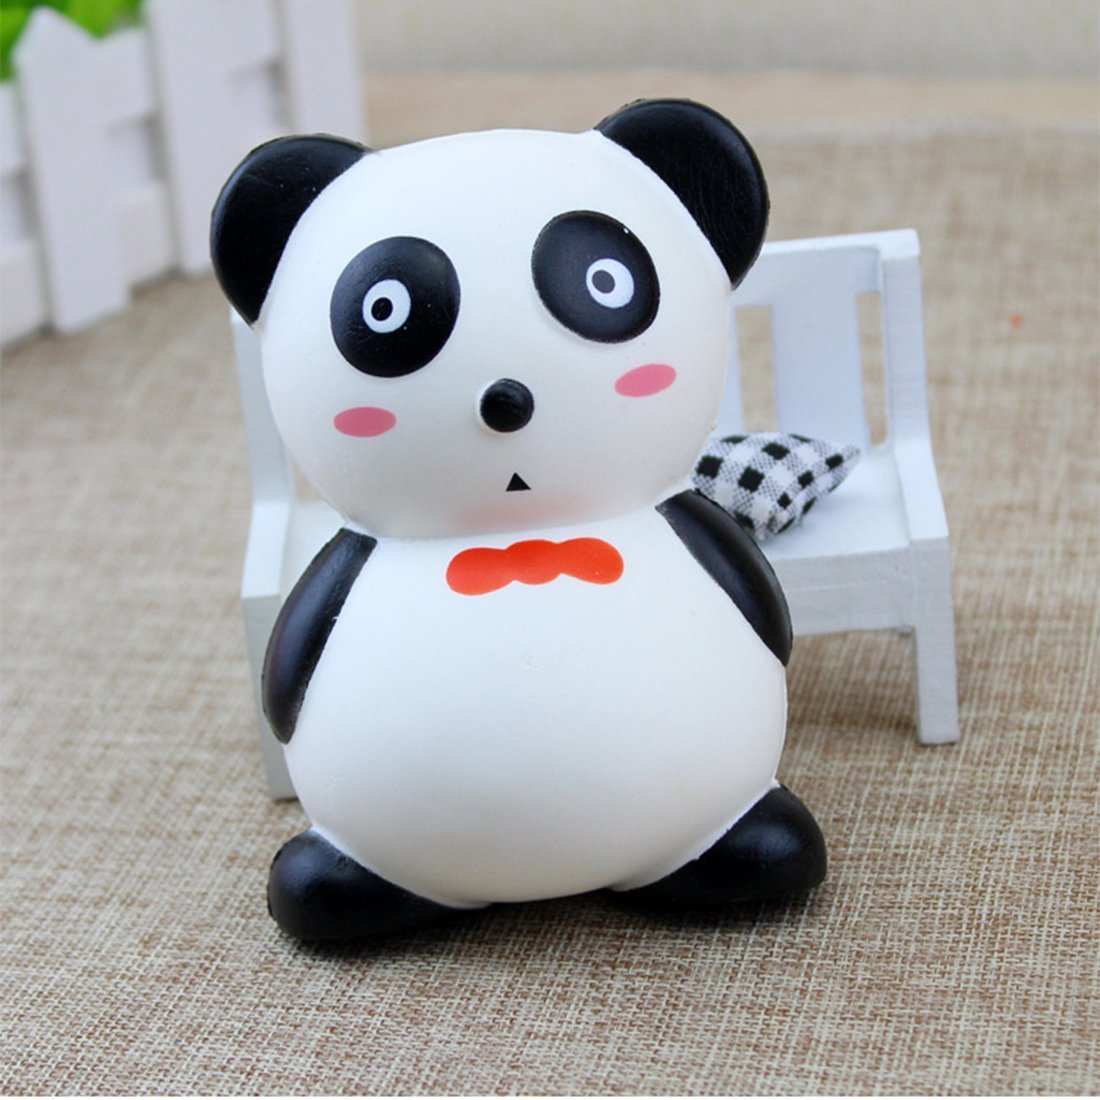 Decompression Toys, Zubita Simulation of Cute Panda Decompression Squeeze Toys Charms Slow Rebound Stress Relief Toys for Kids and Adults